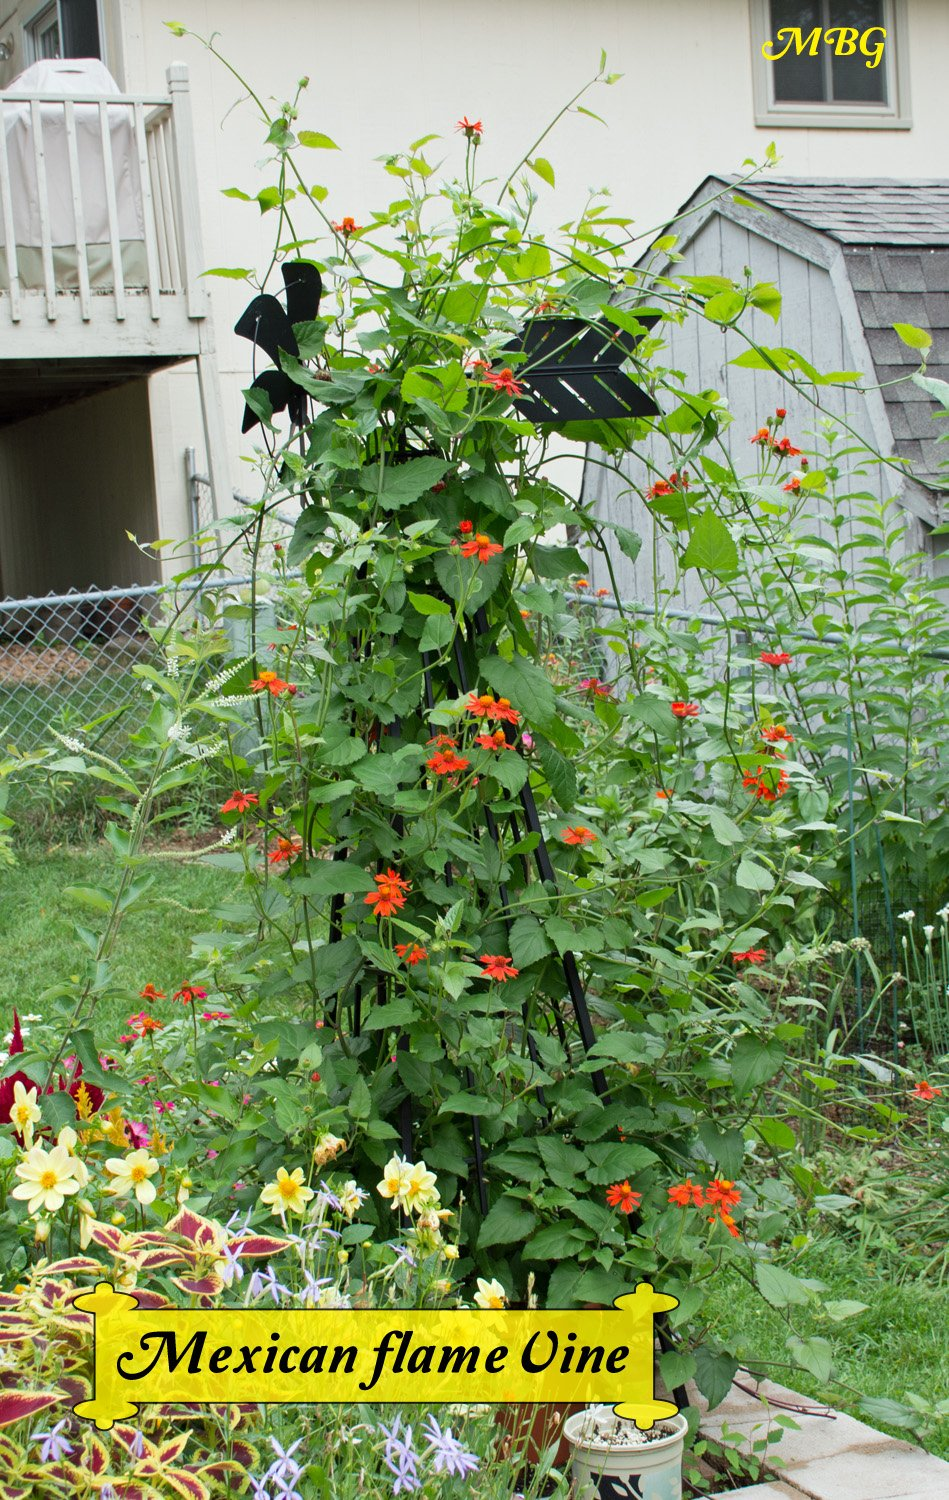 Mexican flame vine climbing vine for monarch butterflies mexican flame vine is a fast growing climbing vine that will completely engulf your trellis in mightylinksfo